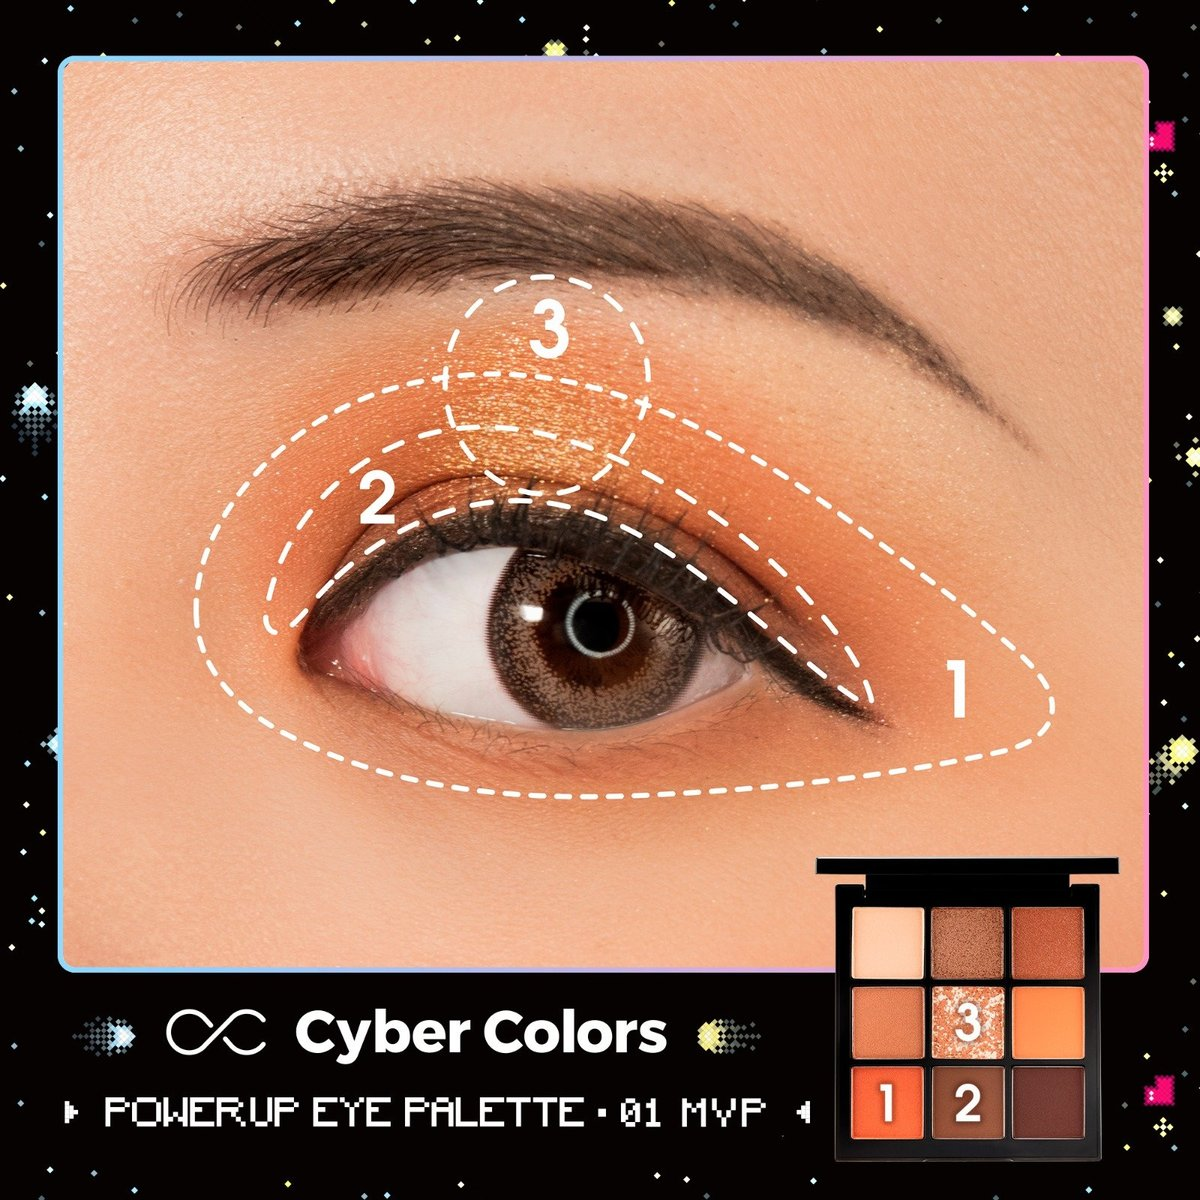 POWERUP EYE PALETTE #01 MVP